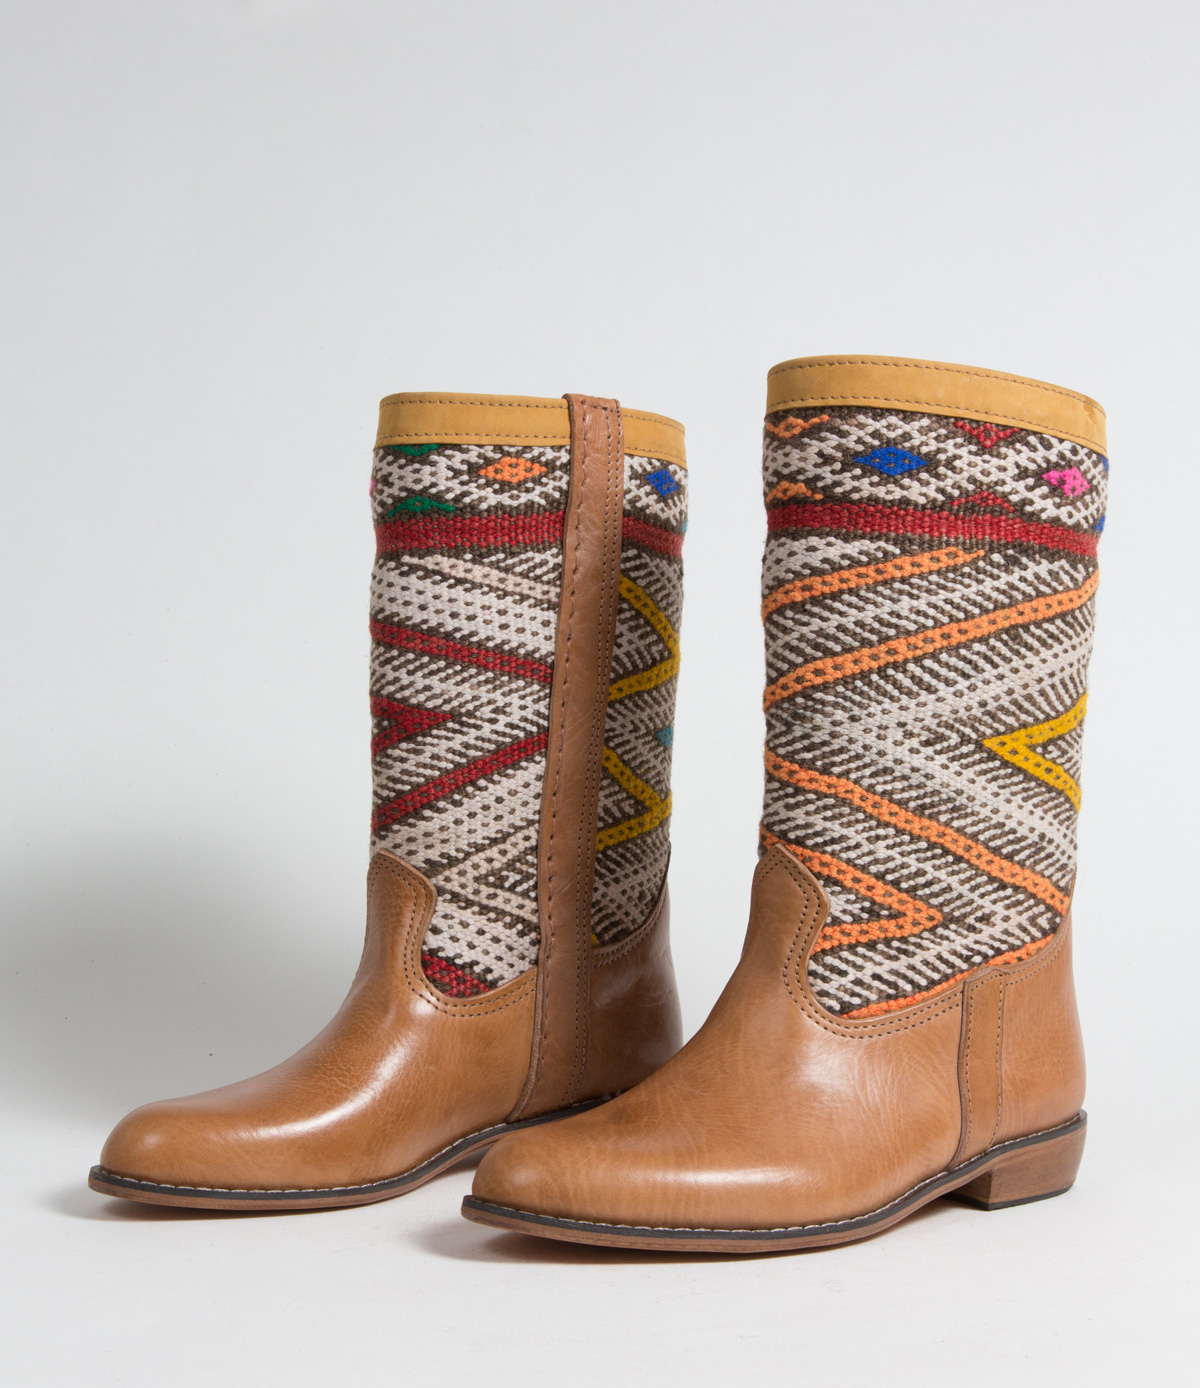 Bottes Kilim cuir mababouche artisanales (Réf. MCL2-39)